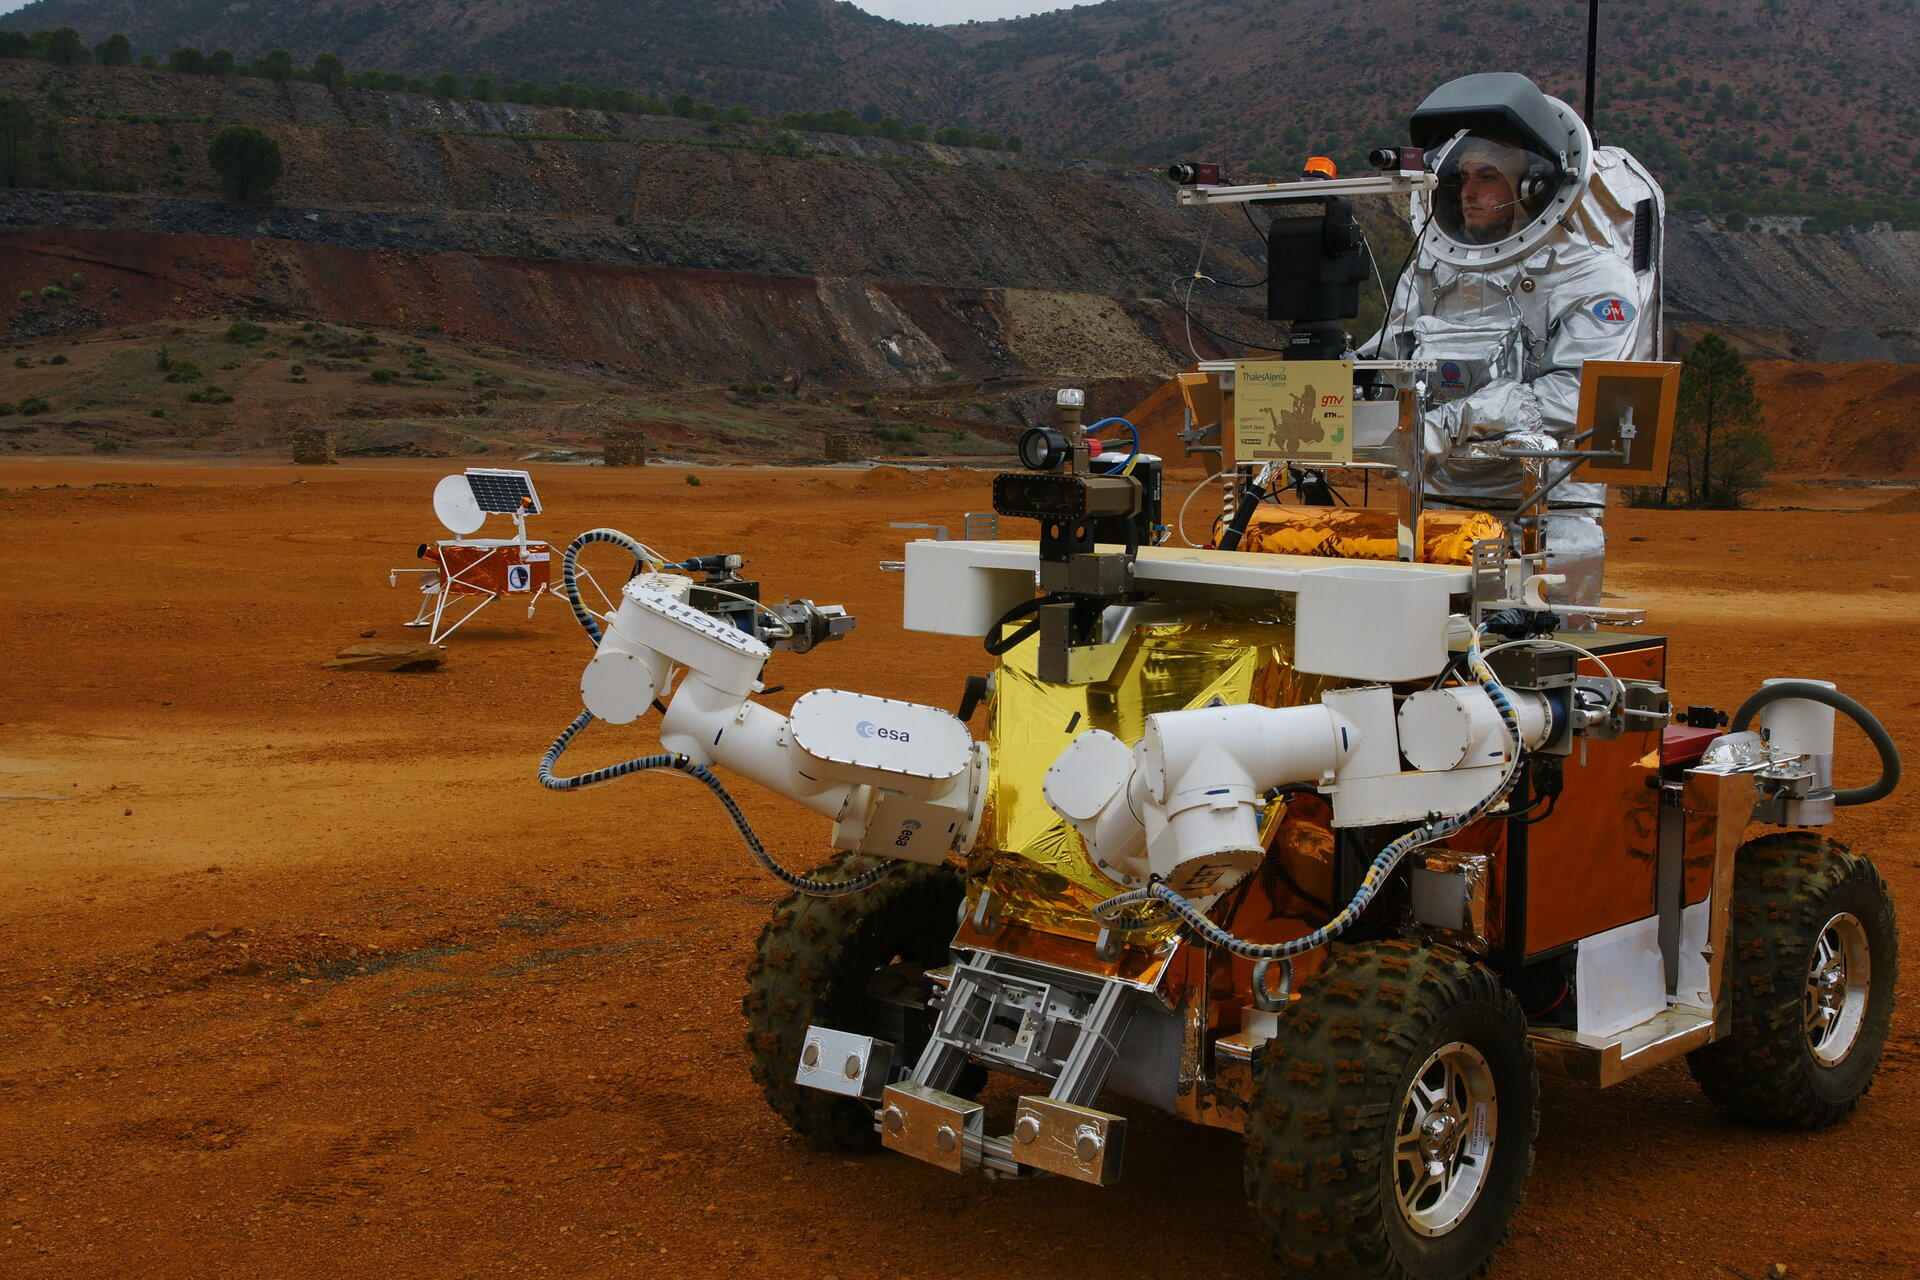 'Astronaut' at the controls of the Eurobot Ground Prototype